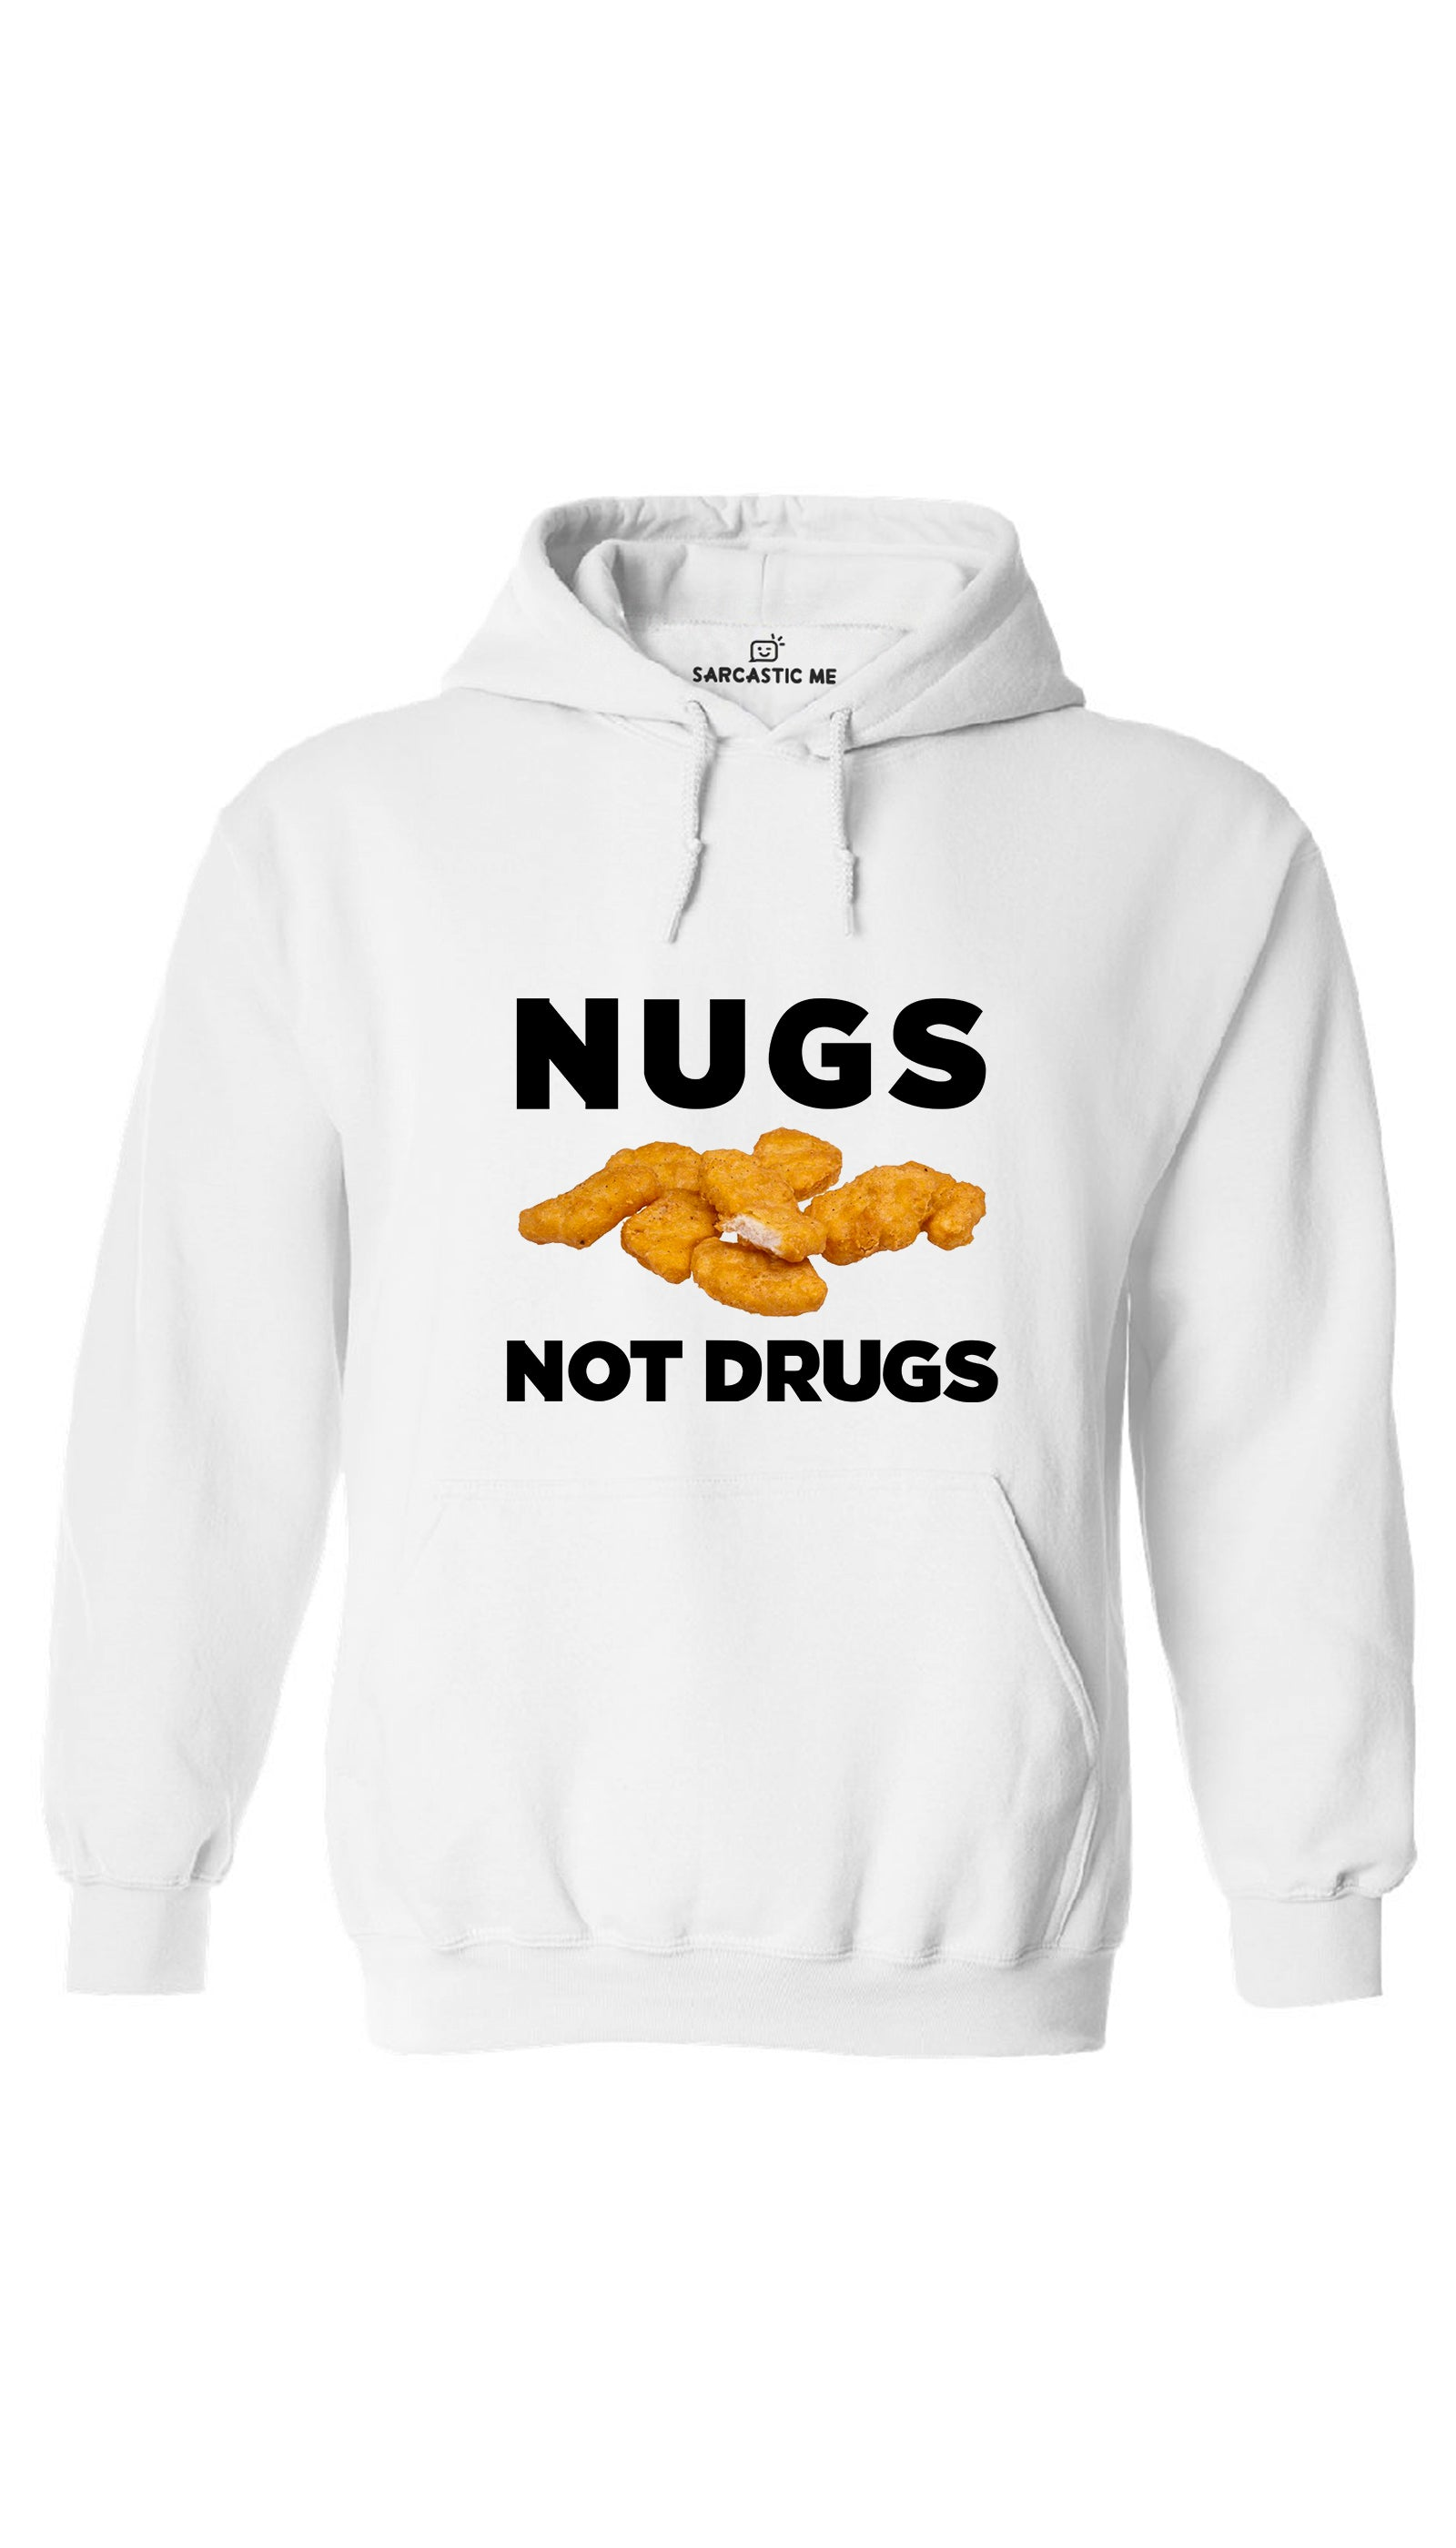 Nugs Not Drugs White Hoodie | Sarcastic ME